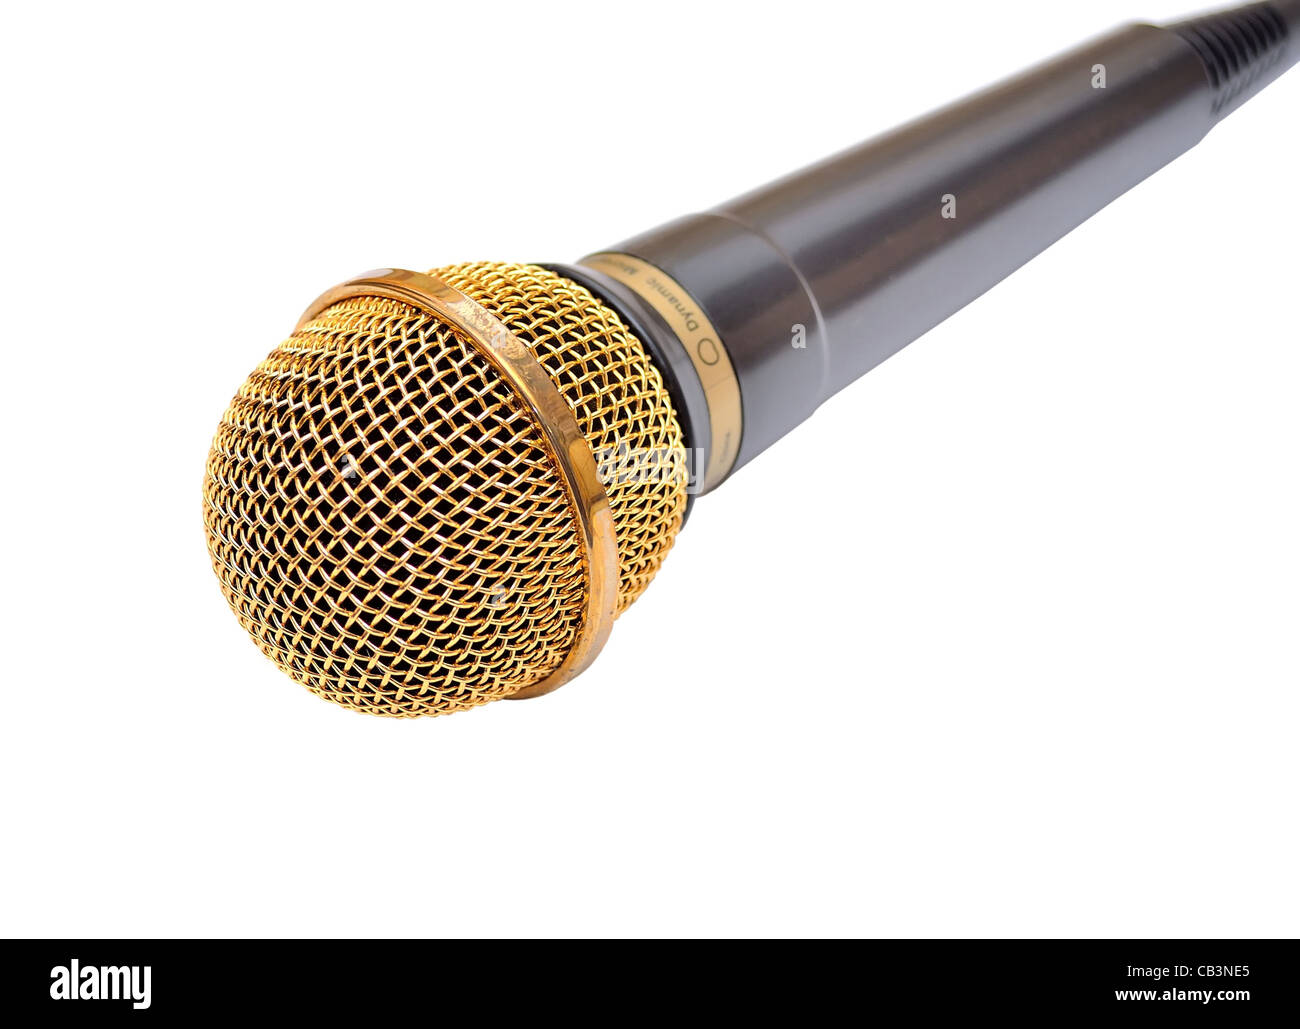 Gold microphone isolated on white - Stock Image